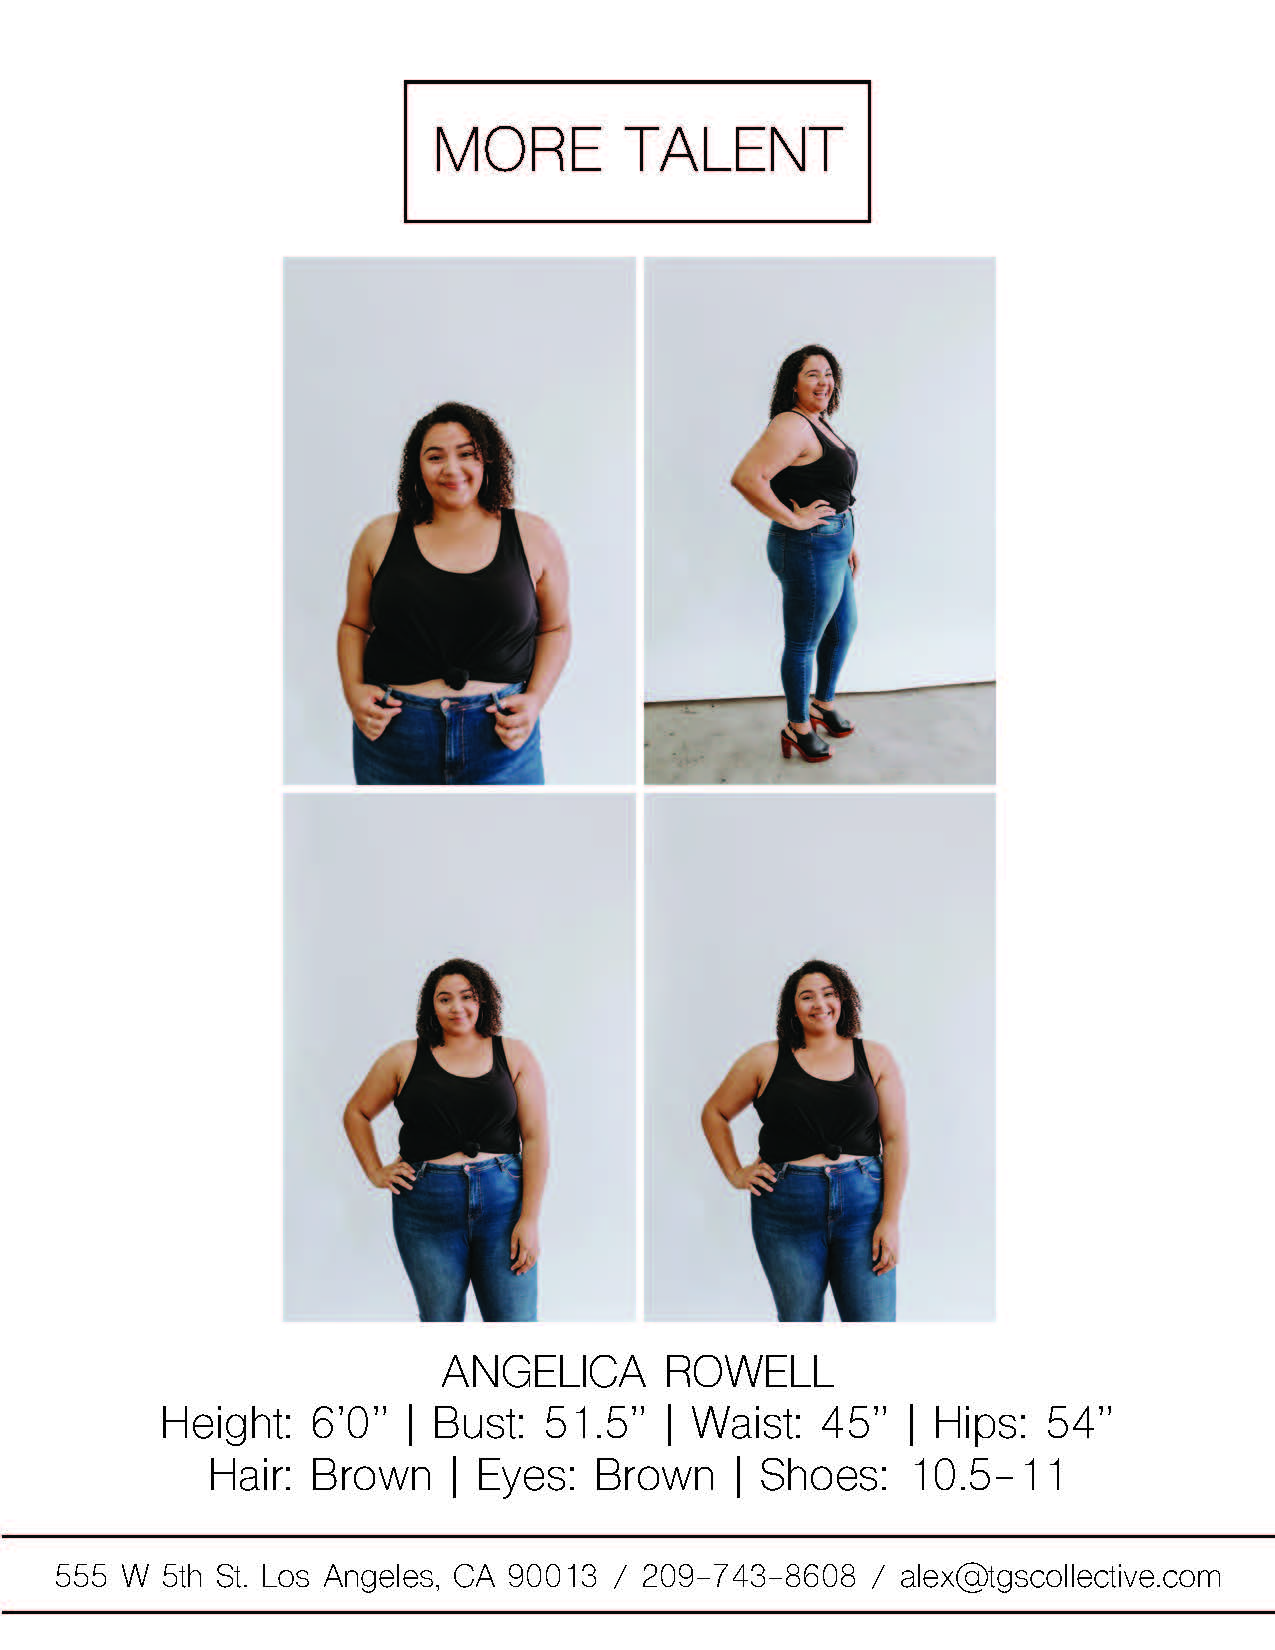 ANGELICA ROWELL MORE TALENT